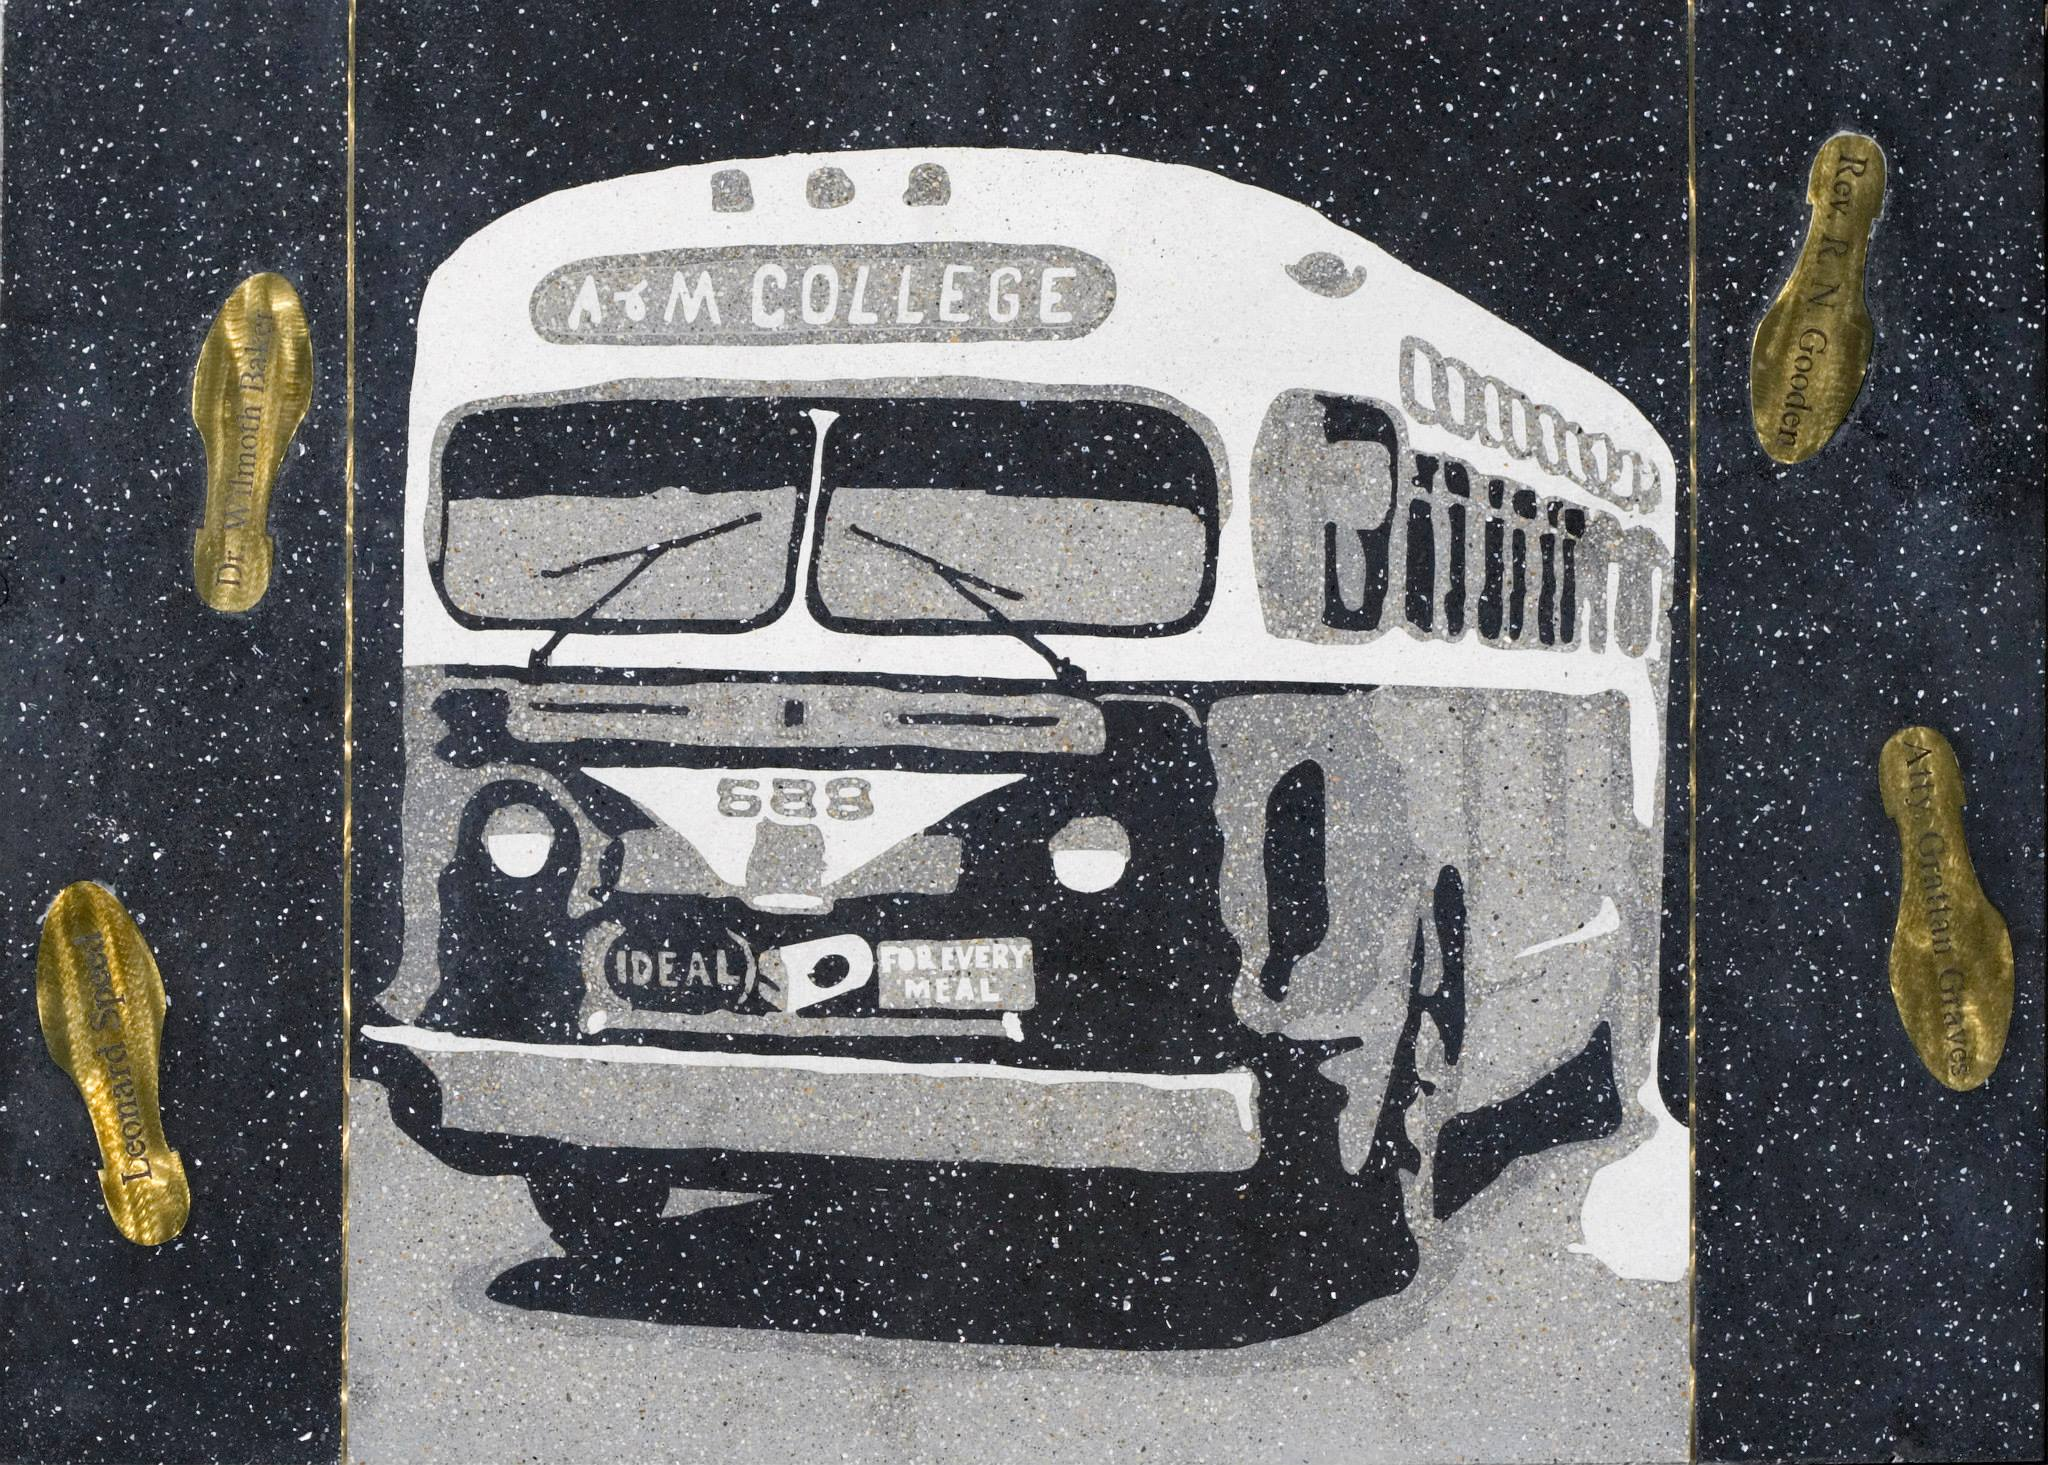 This panel shows one of the busses, A & M College is prominently shown. Courtesy of Master Craftsman Studio